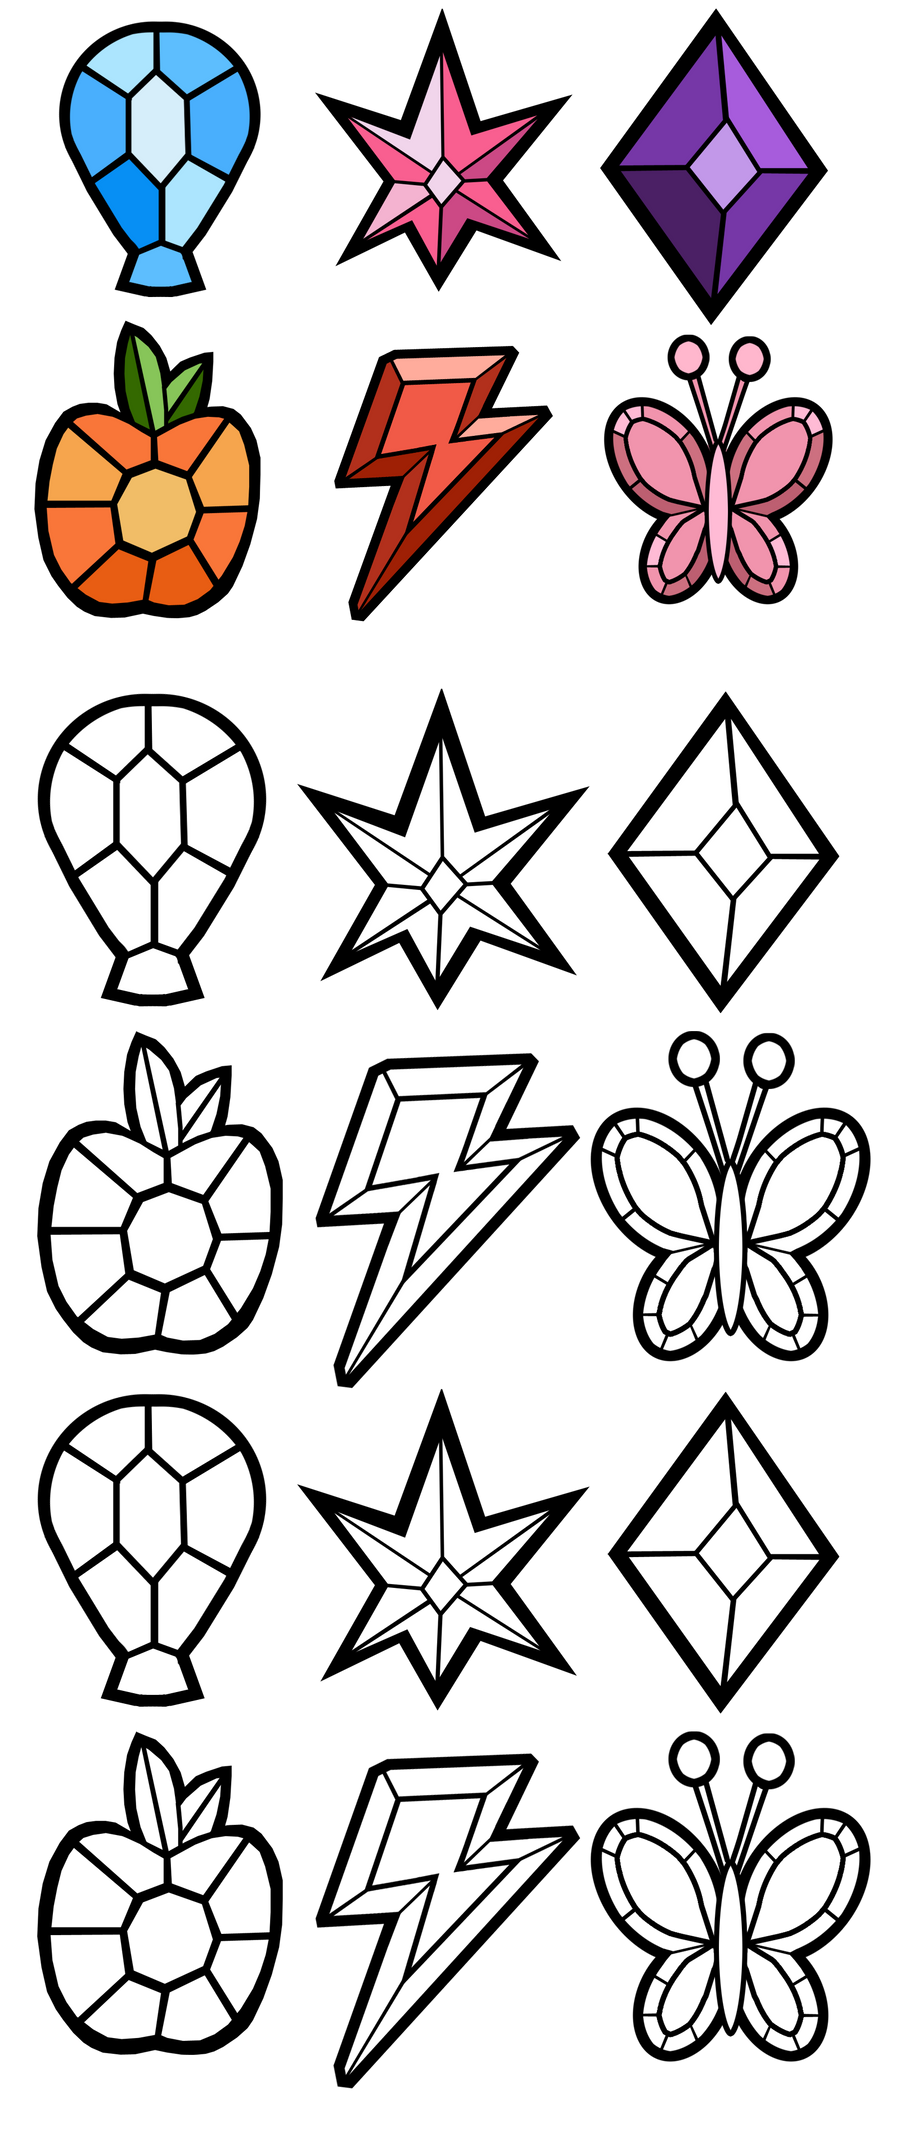 Elements of harmony gems free by akili amethyst on for Gem coloring pages